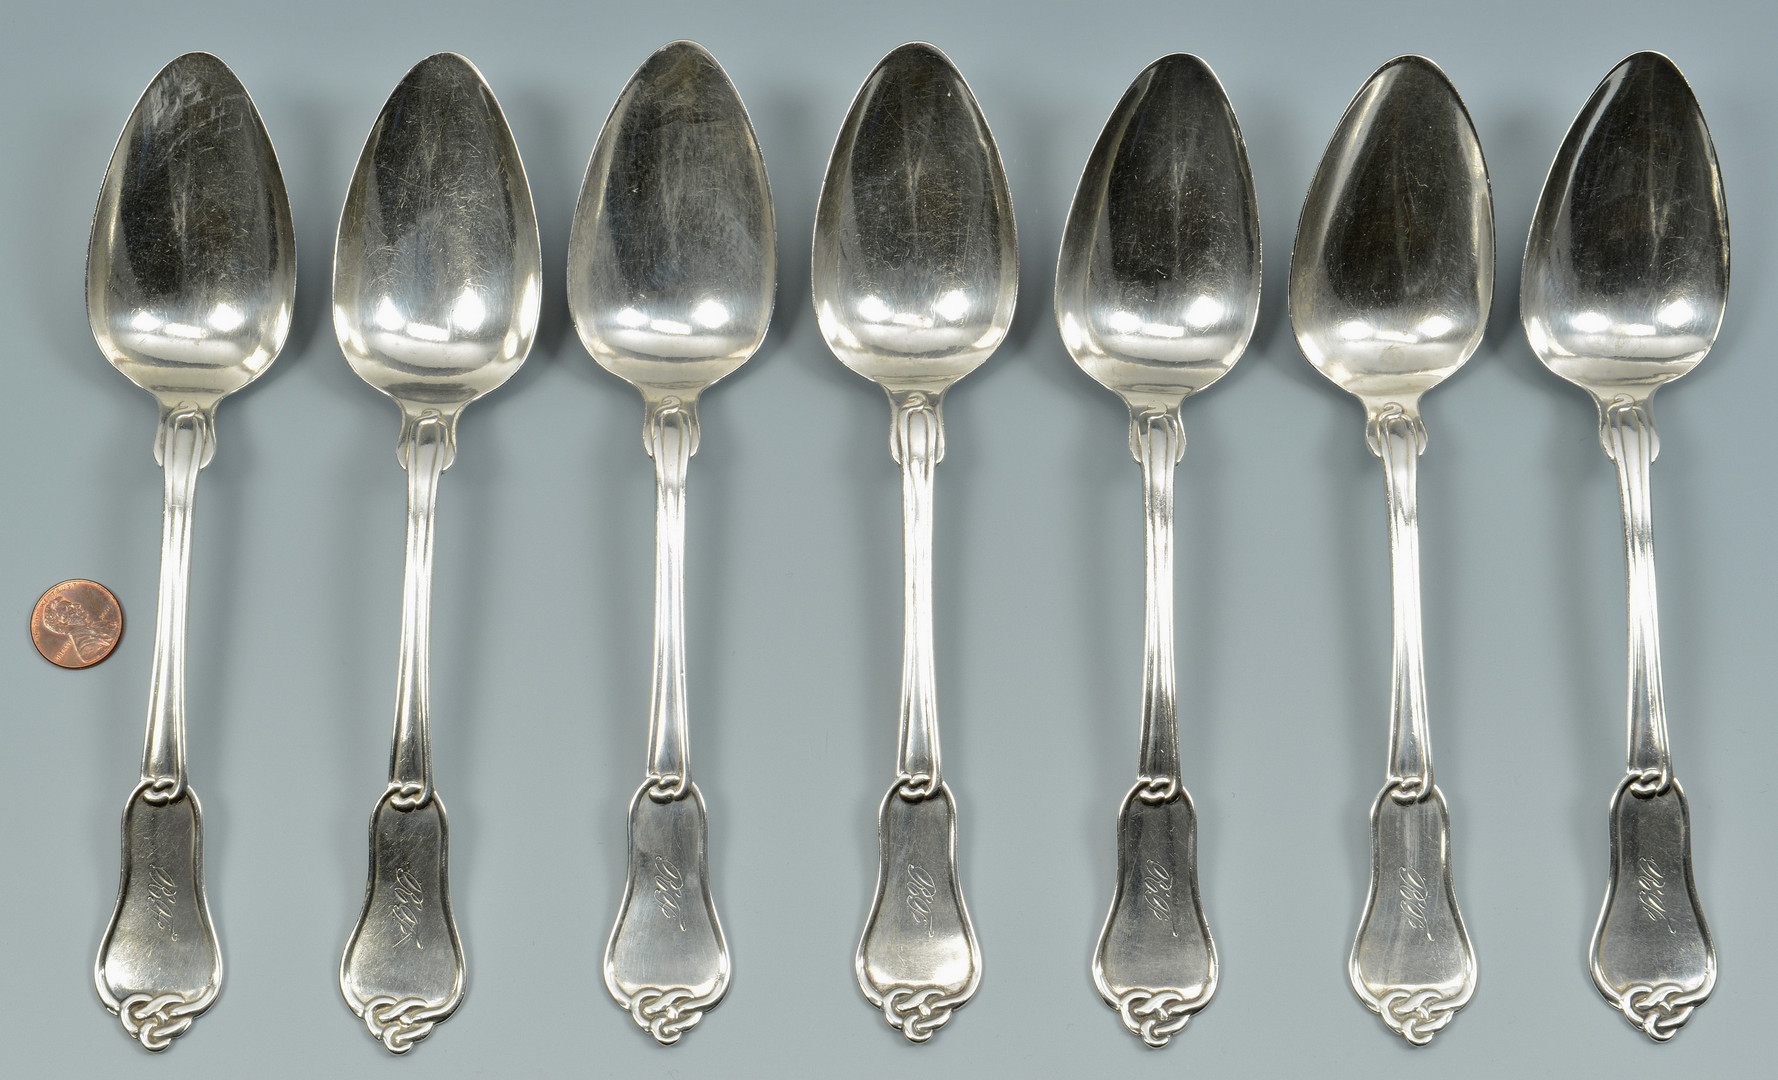 Lot 78: 7 Calhoun TN Coin Tablespoons, Knot Pattern